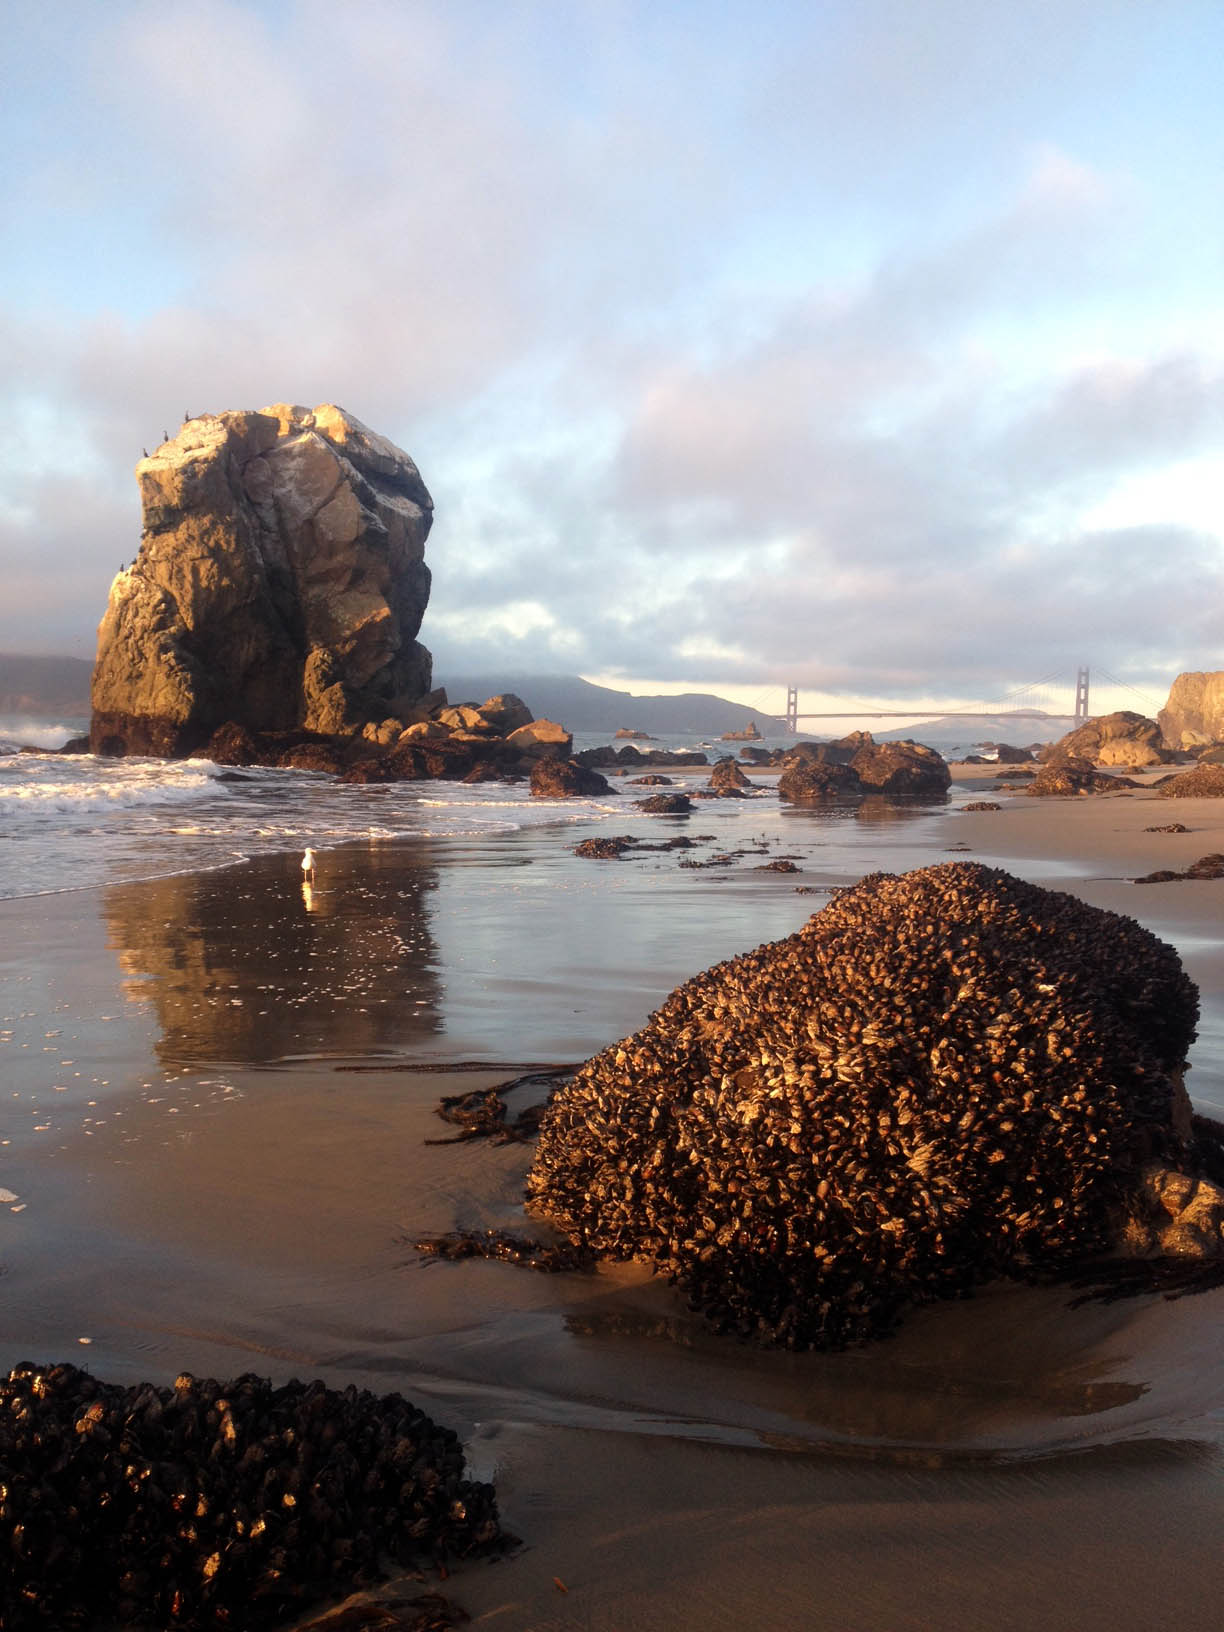 The view of the Golden Gate from Mile Rock Beach. You can see the mussels on the rocks here.